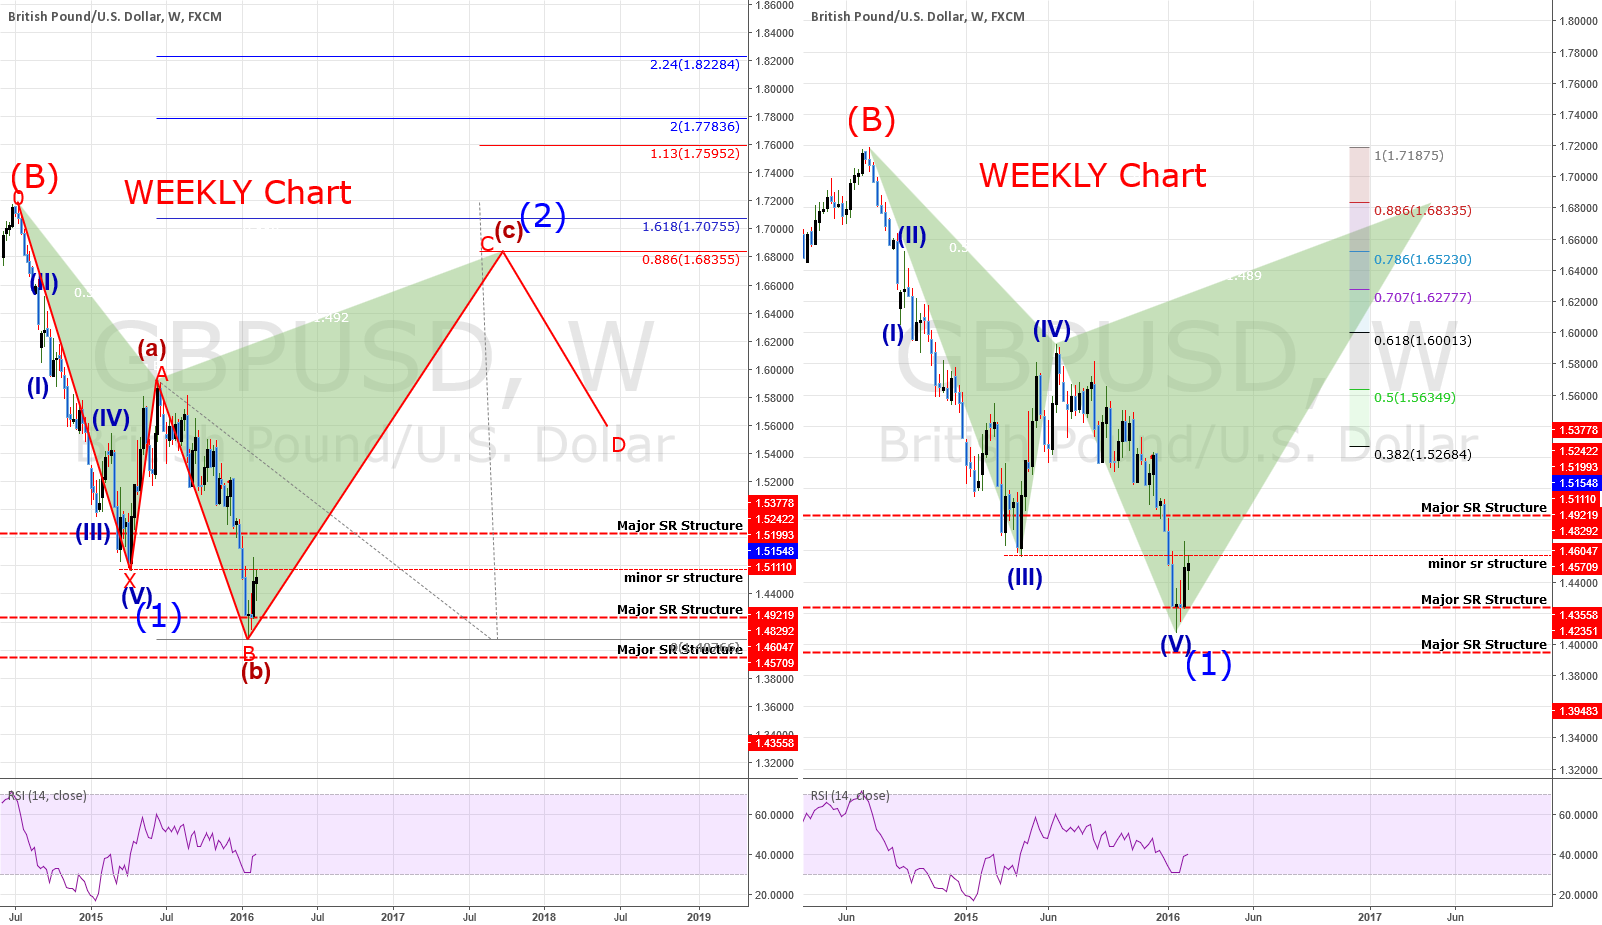 GBPUSD: Weekly Chart - 2 Different Wave Counts - Same Direction